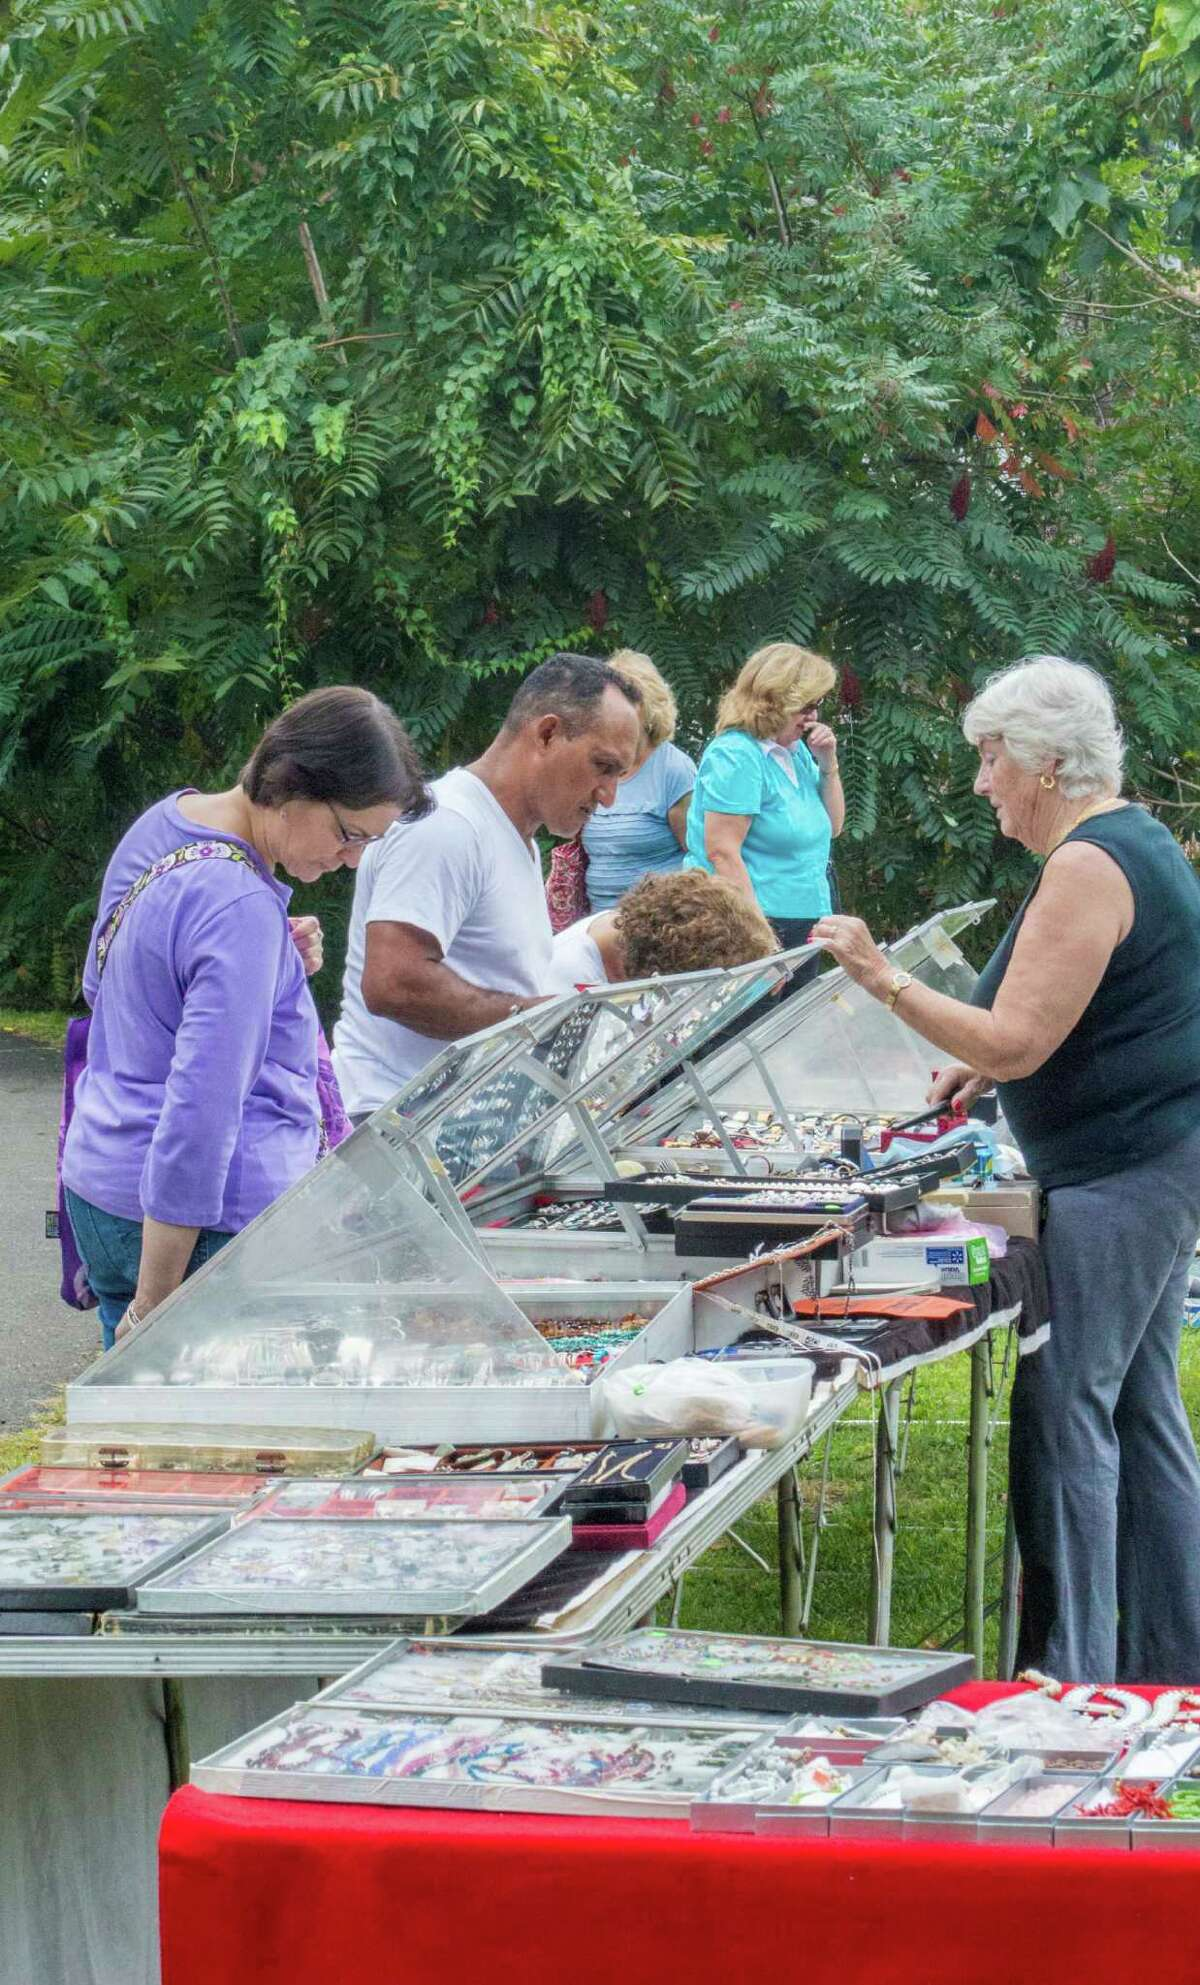 On Sunday, Sept. 18, the Lockwood-Mathews Mansion Museum in Norwalk will host its ninth annual Old-fashioned Flea Market and classic/antique car show.